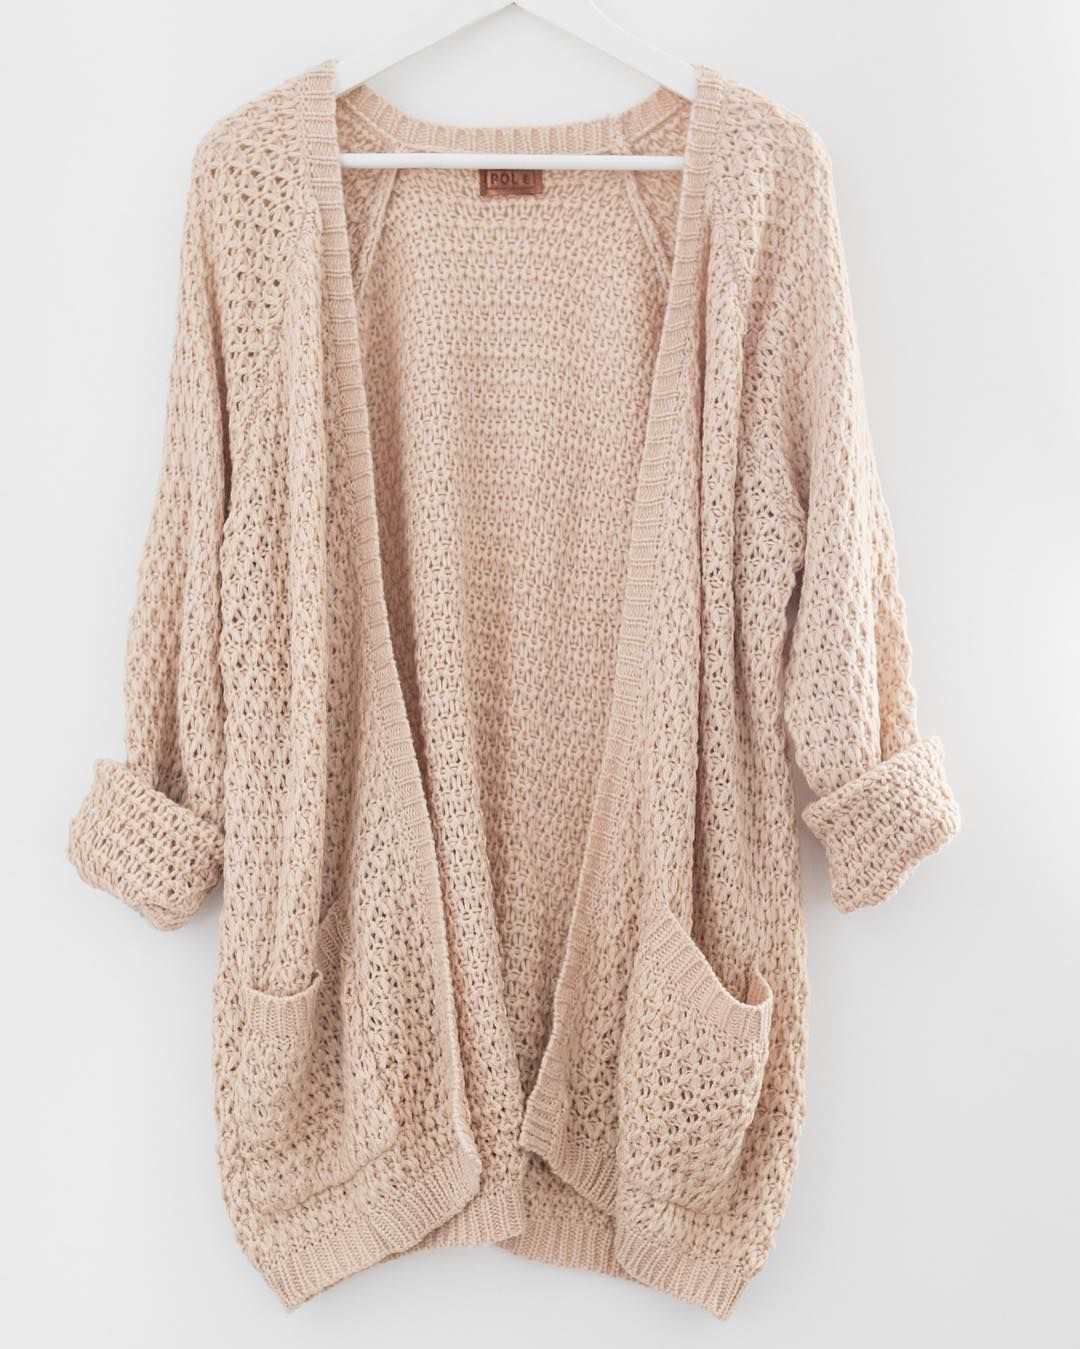 Chloe Knit Cardigan A #musthave for Fall! Medium and large still ...